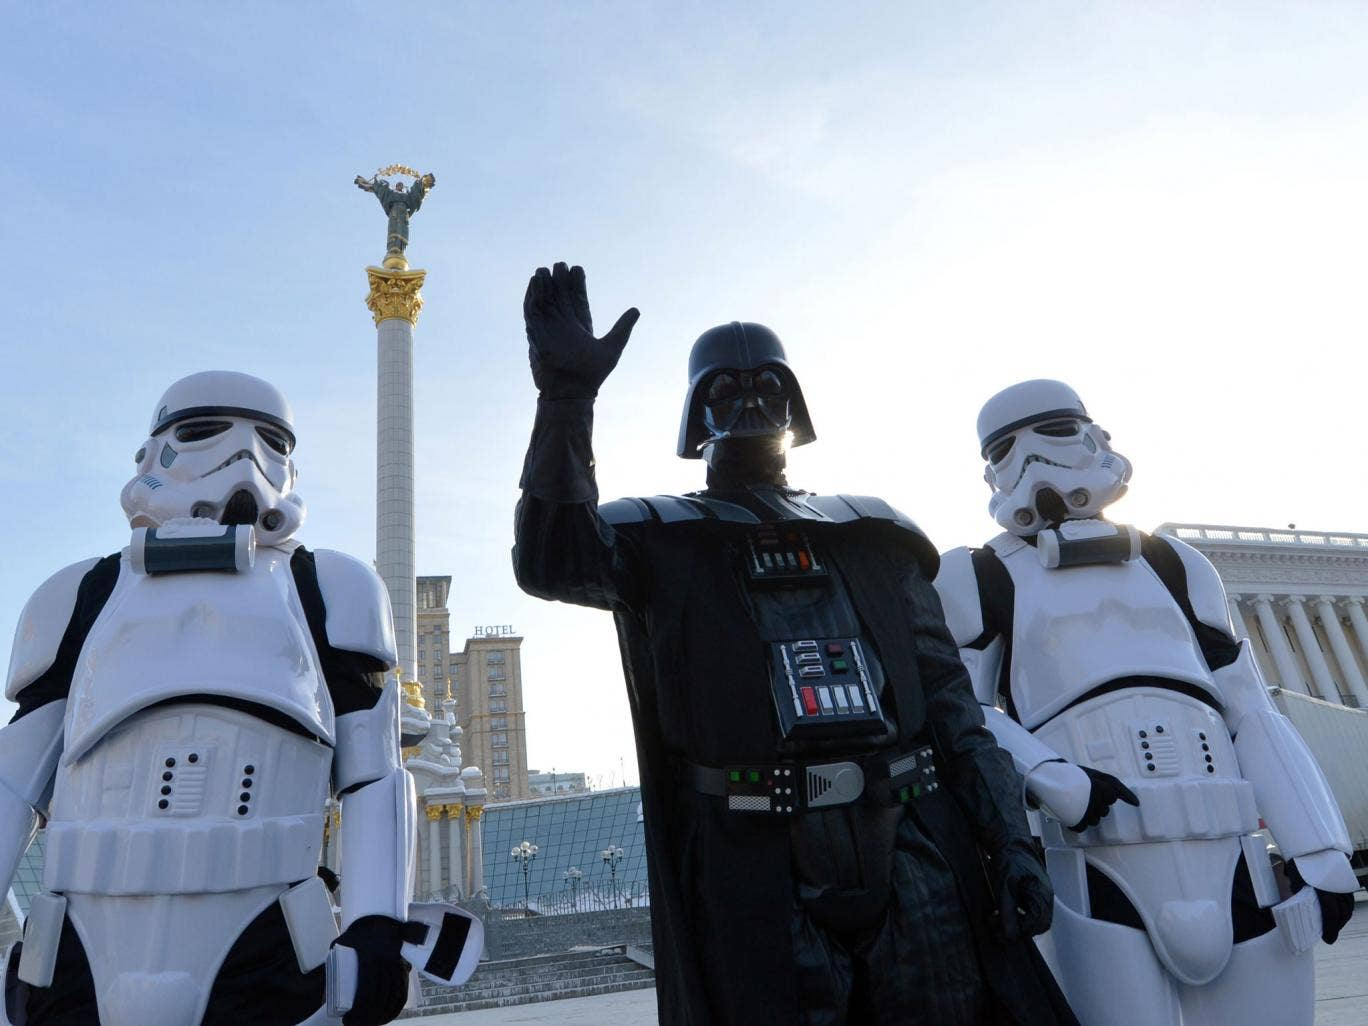 An individual dressed as Darth Vader filed documents to the Ukrainian Central Elections Commission (CEC) be registered as a presidential candidate